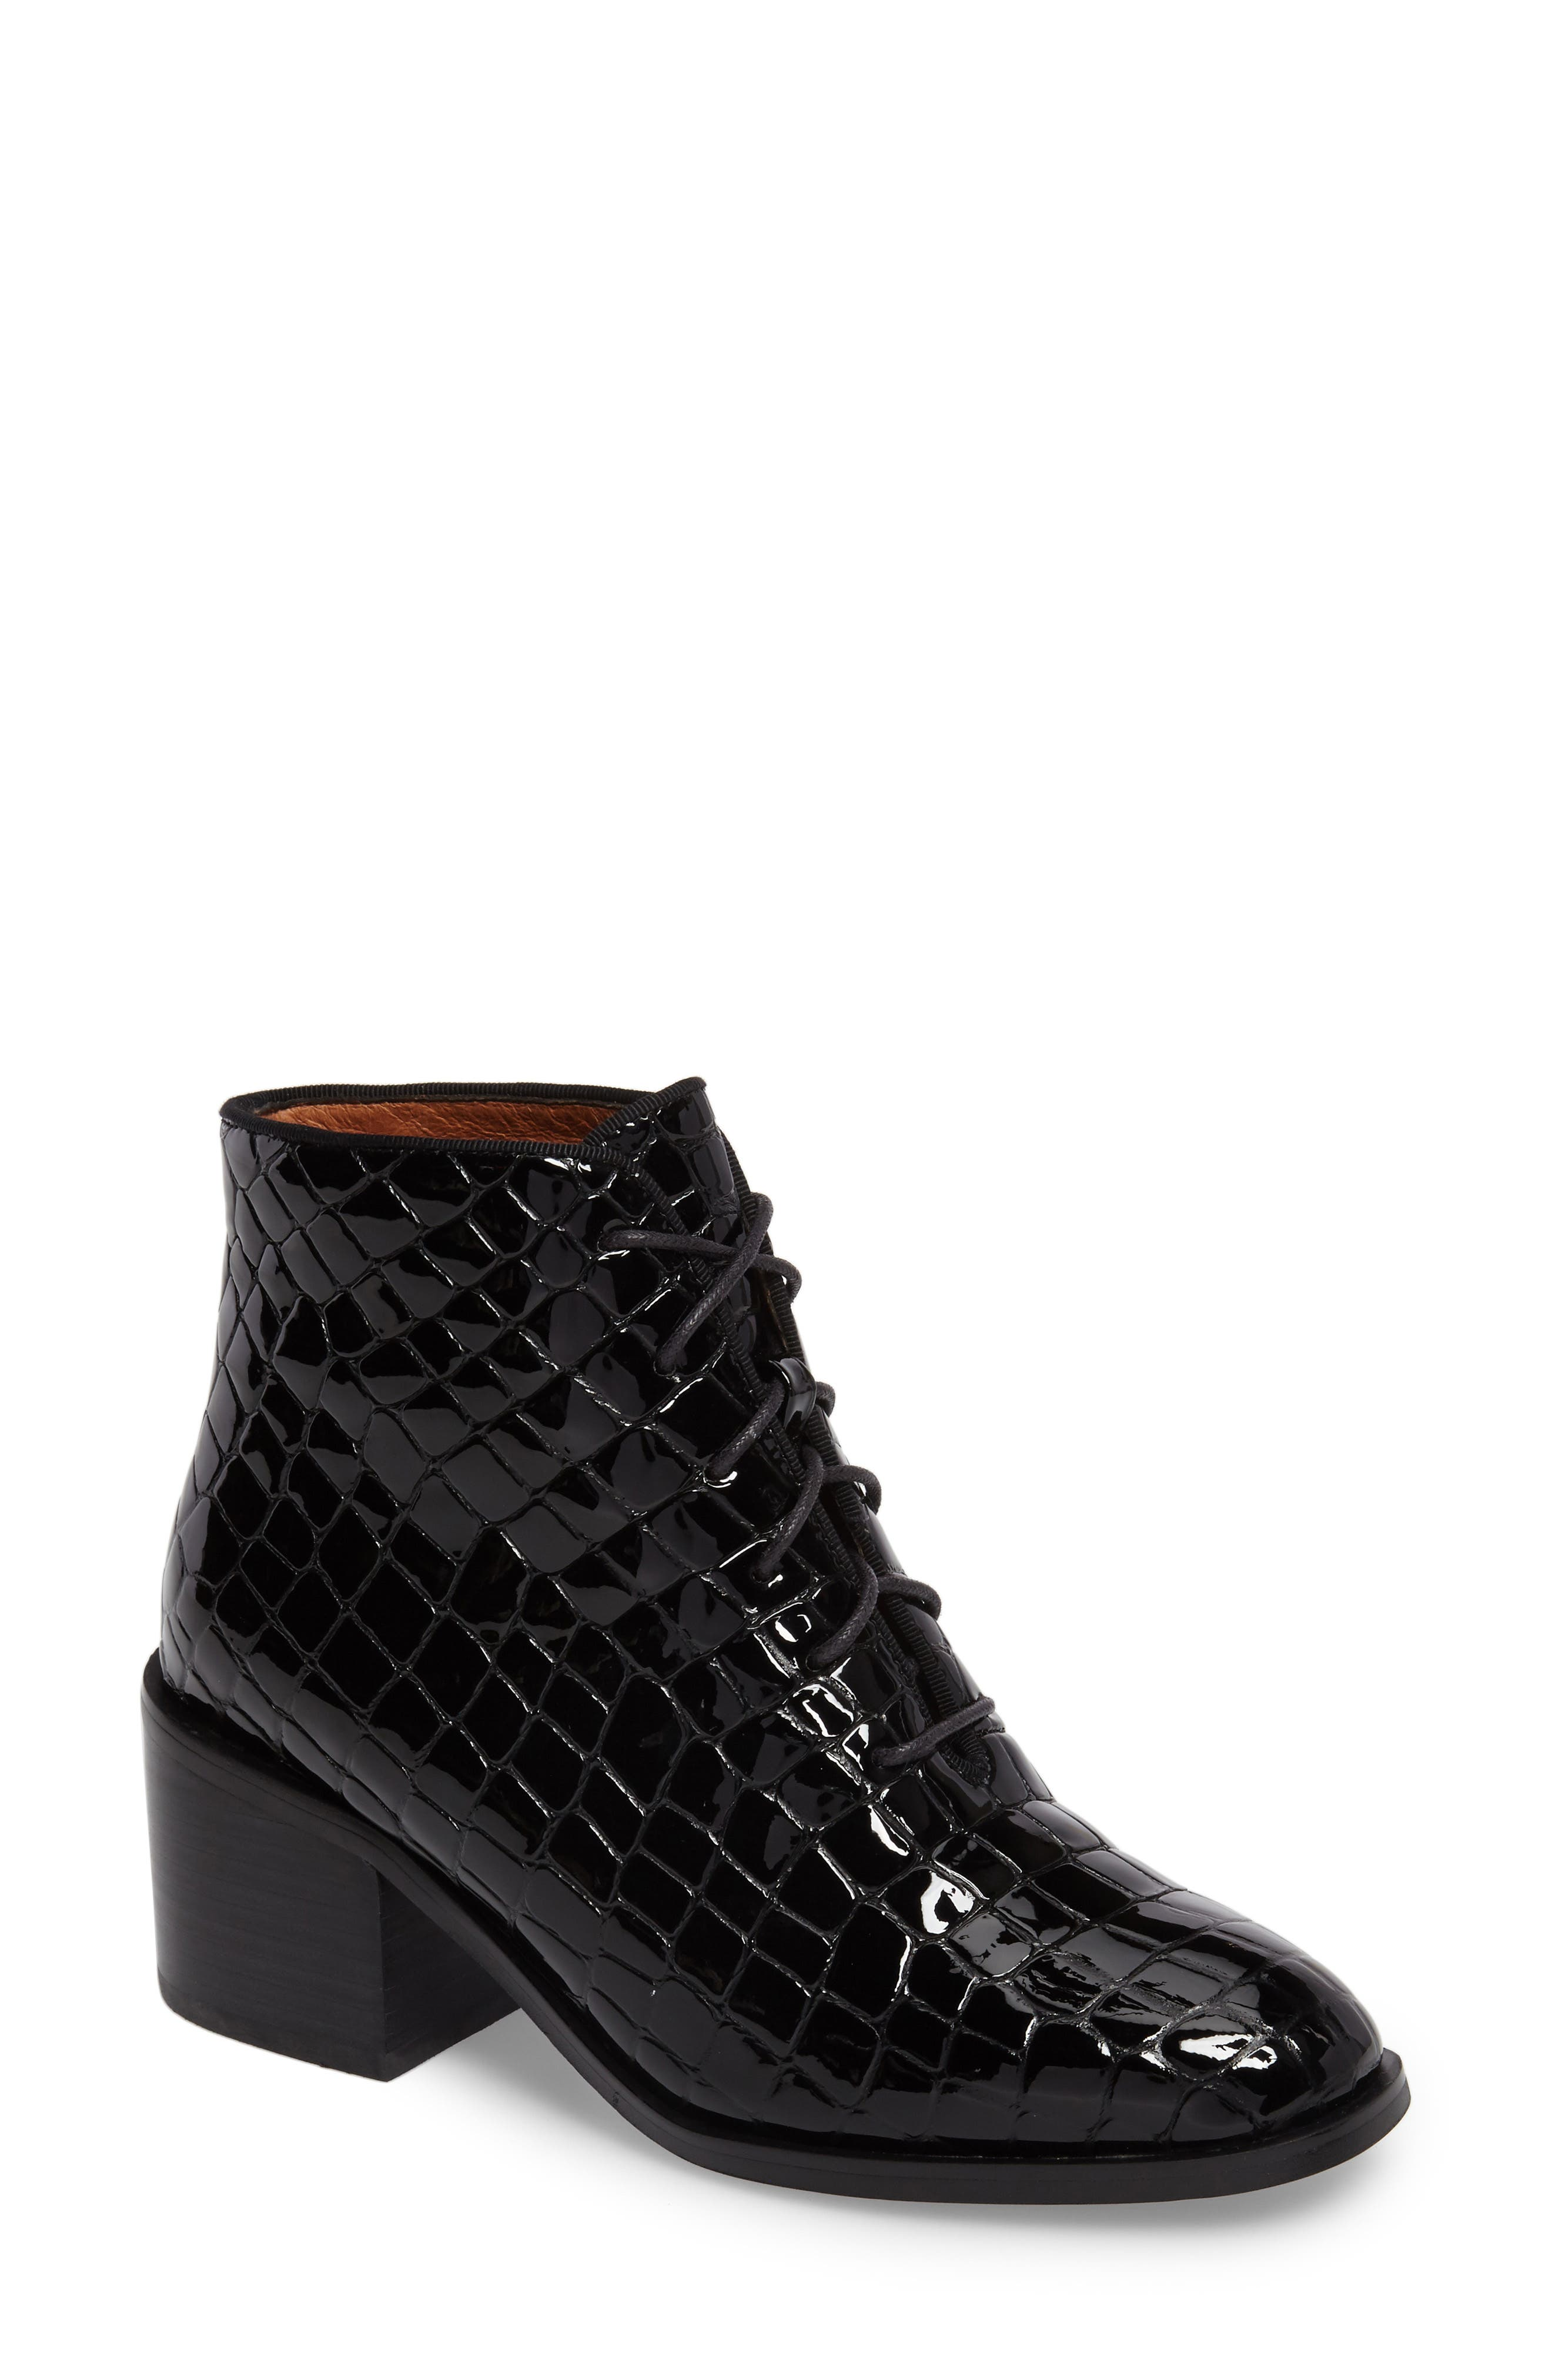 Talcott Block Heel Bootie,                             Main thumbnail 1, color,                             Black Patent Stone